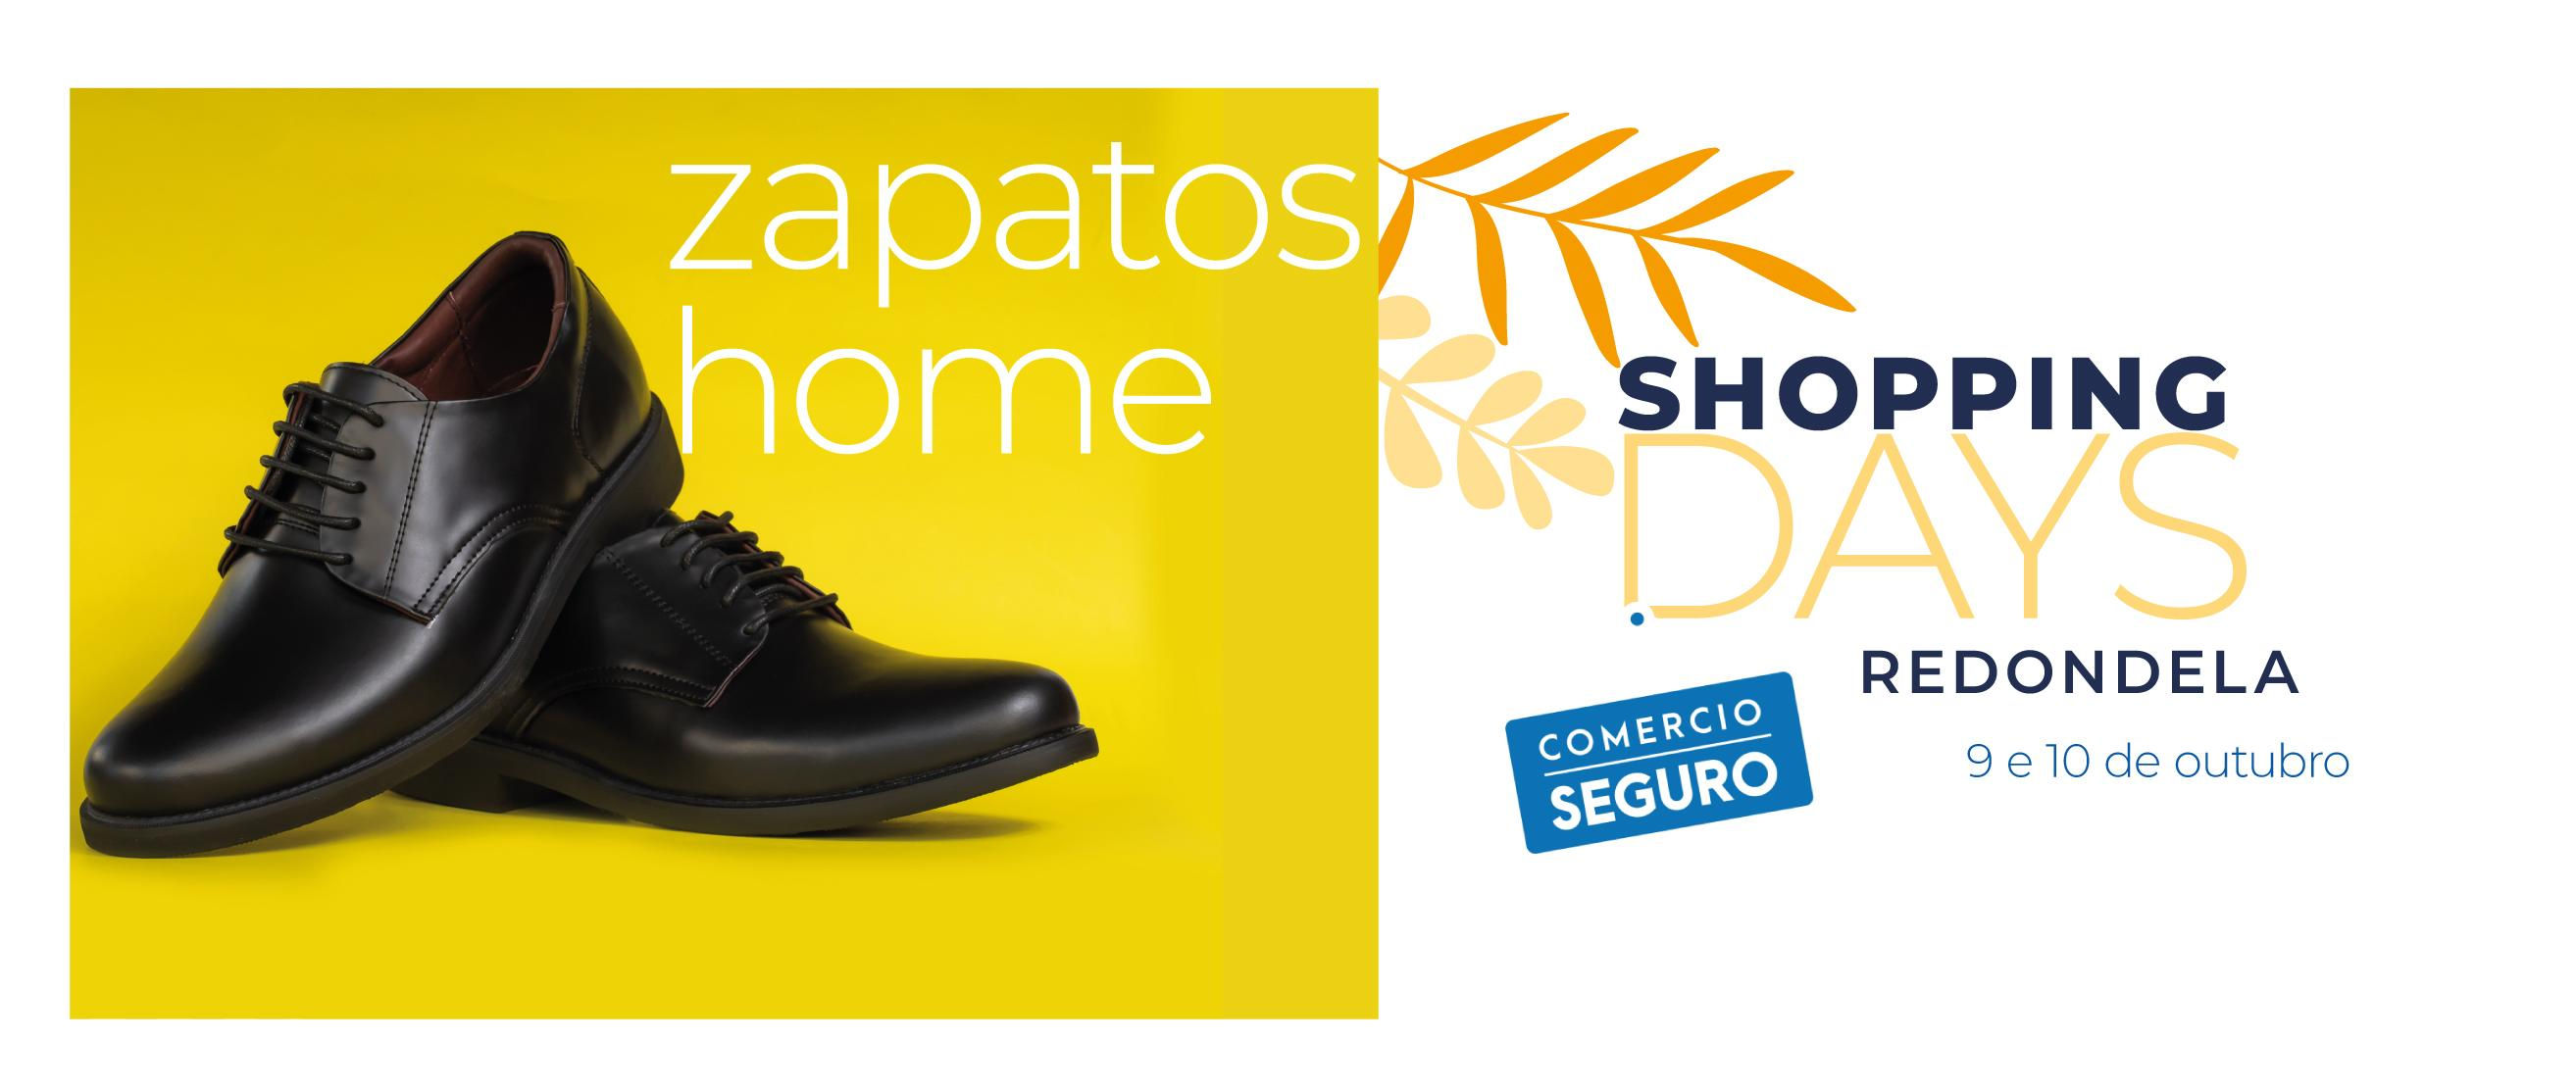 seccion-zapatos-home.jpg